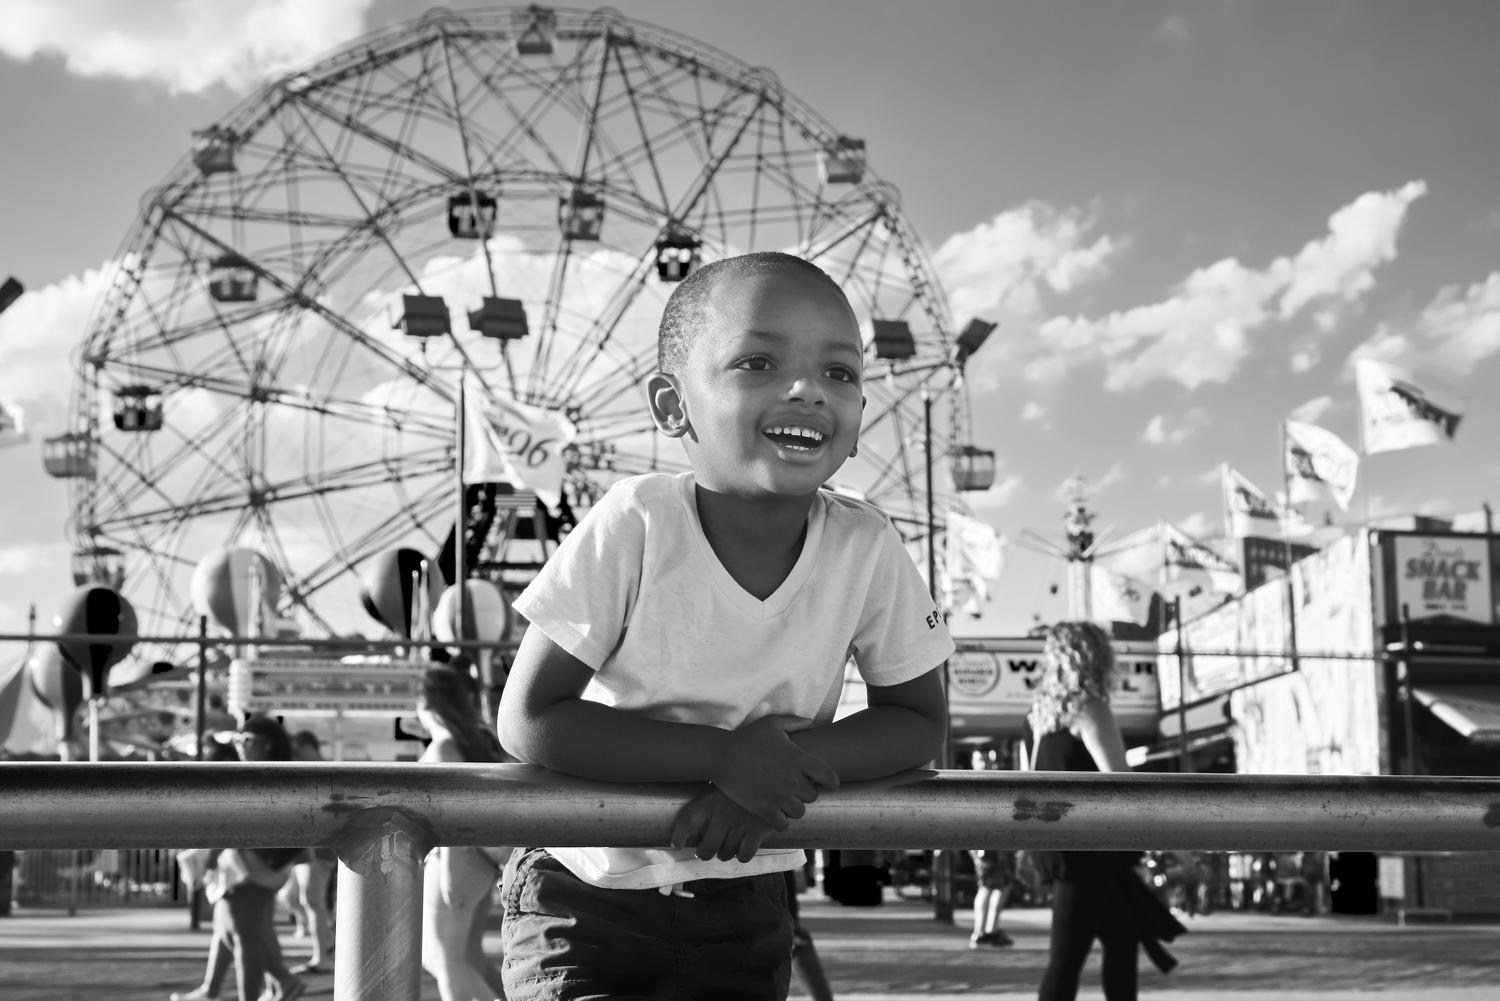 Young boy enjoys Coney Island. Photopgraph by Joel Davidson.